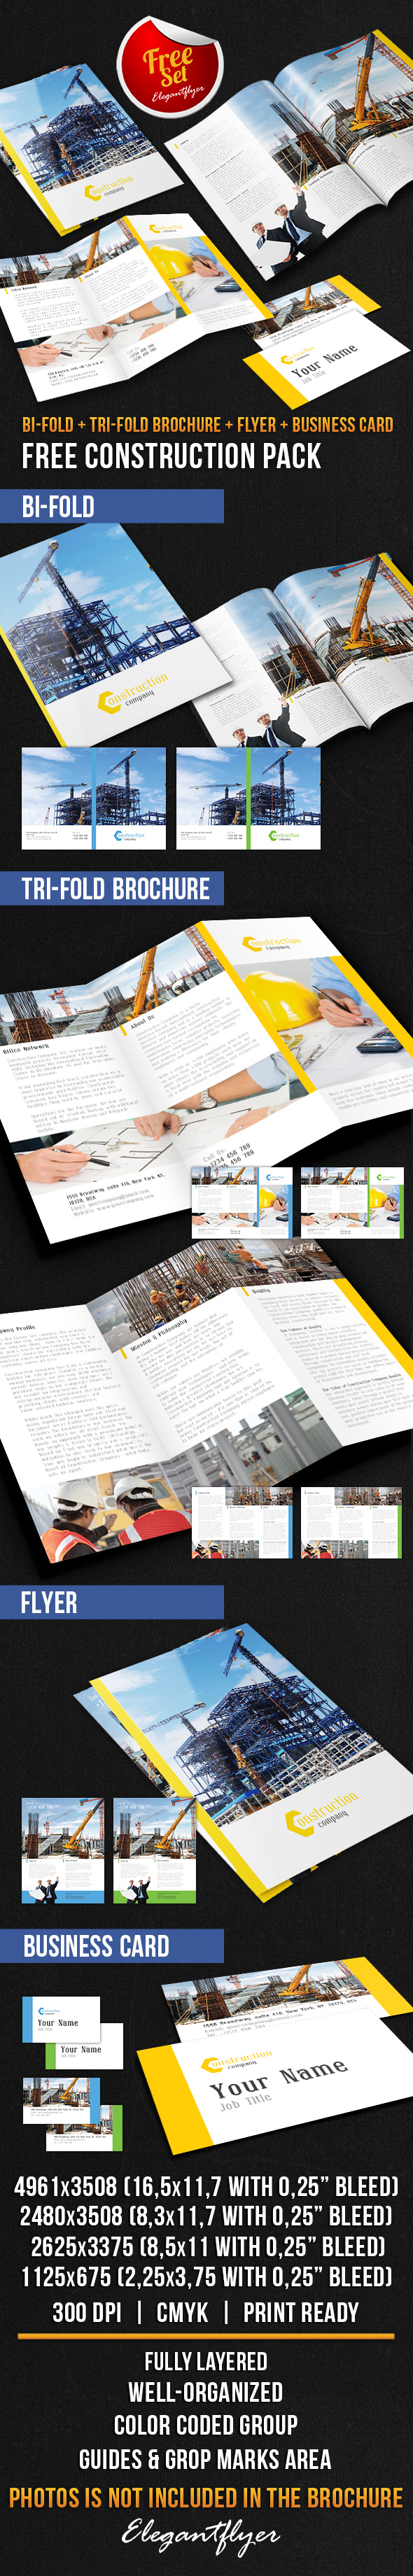 Best Free PSD Brochure Templates Free PSD Templates - Construction brochure templates